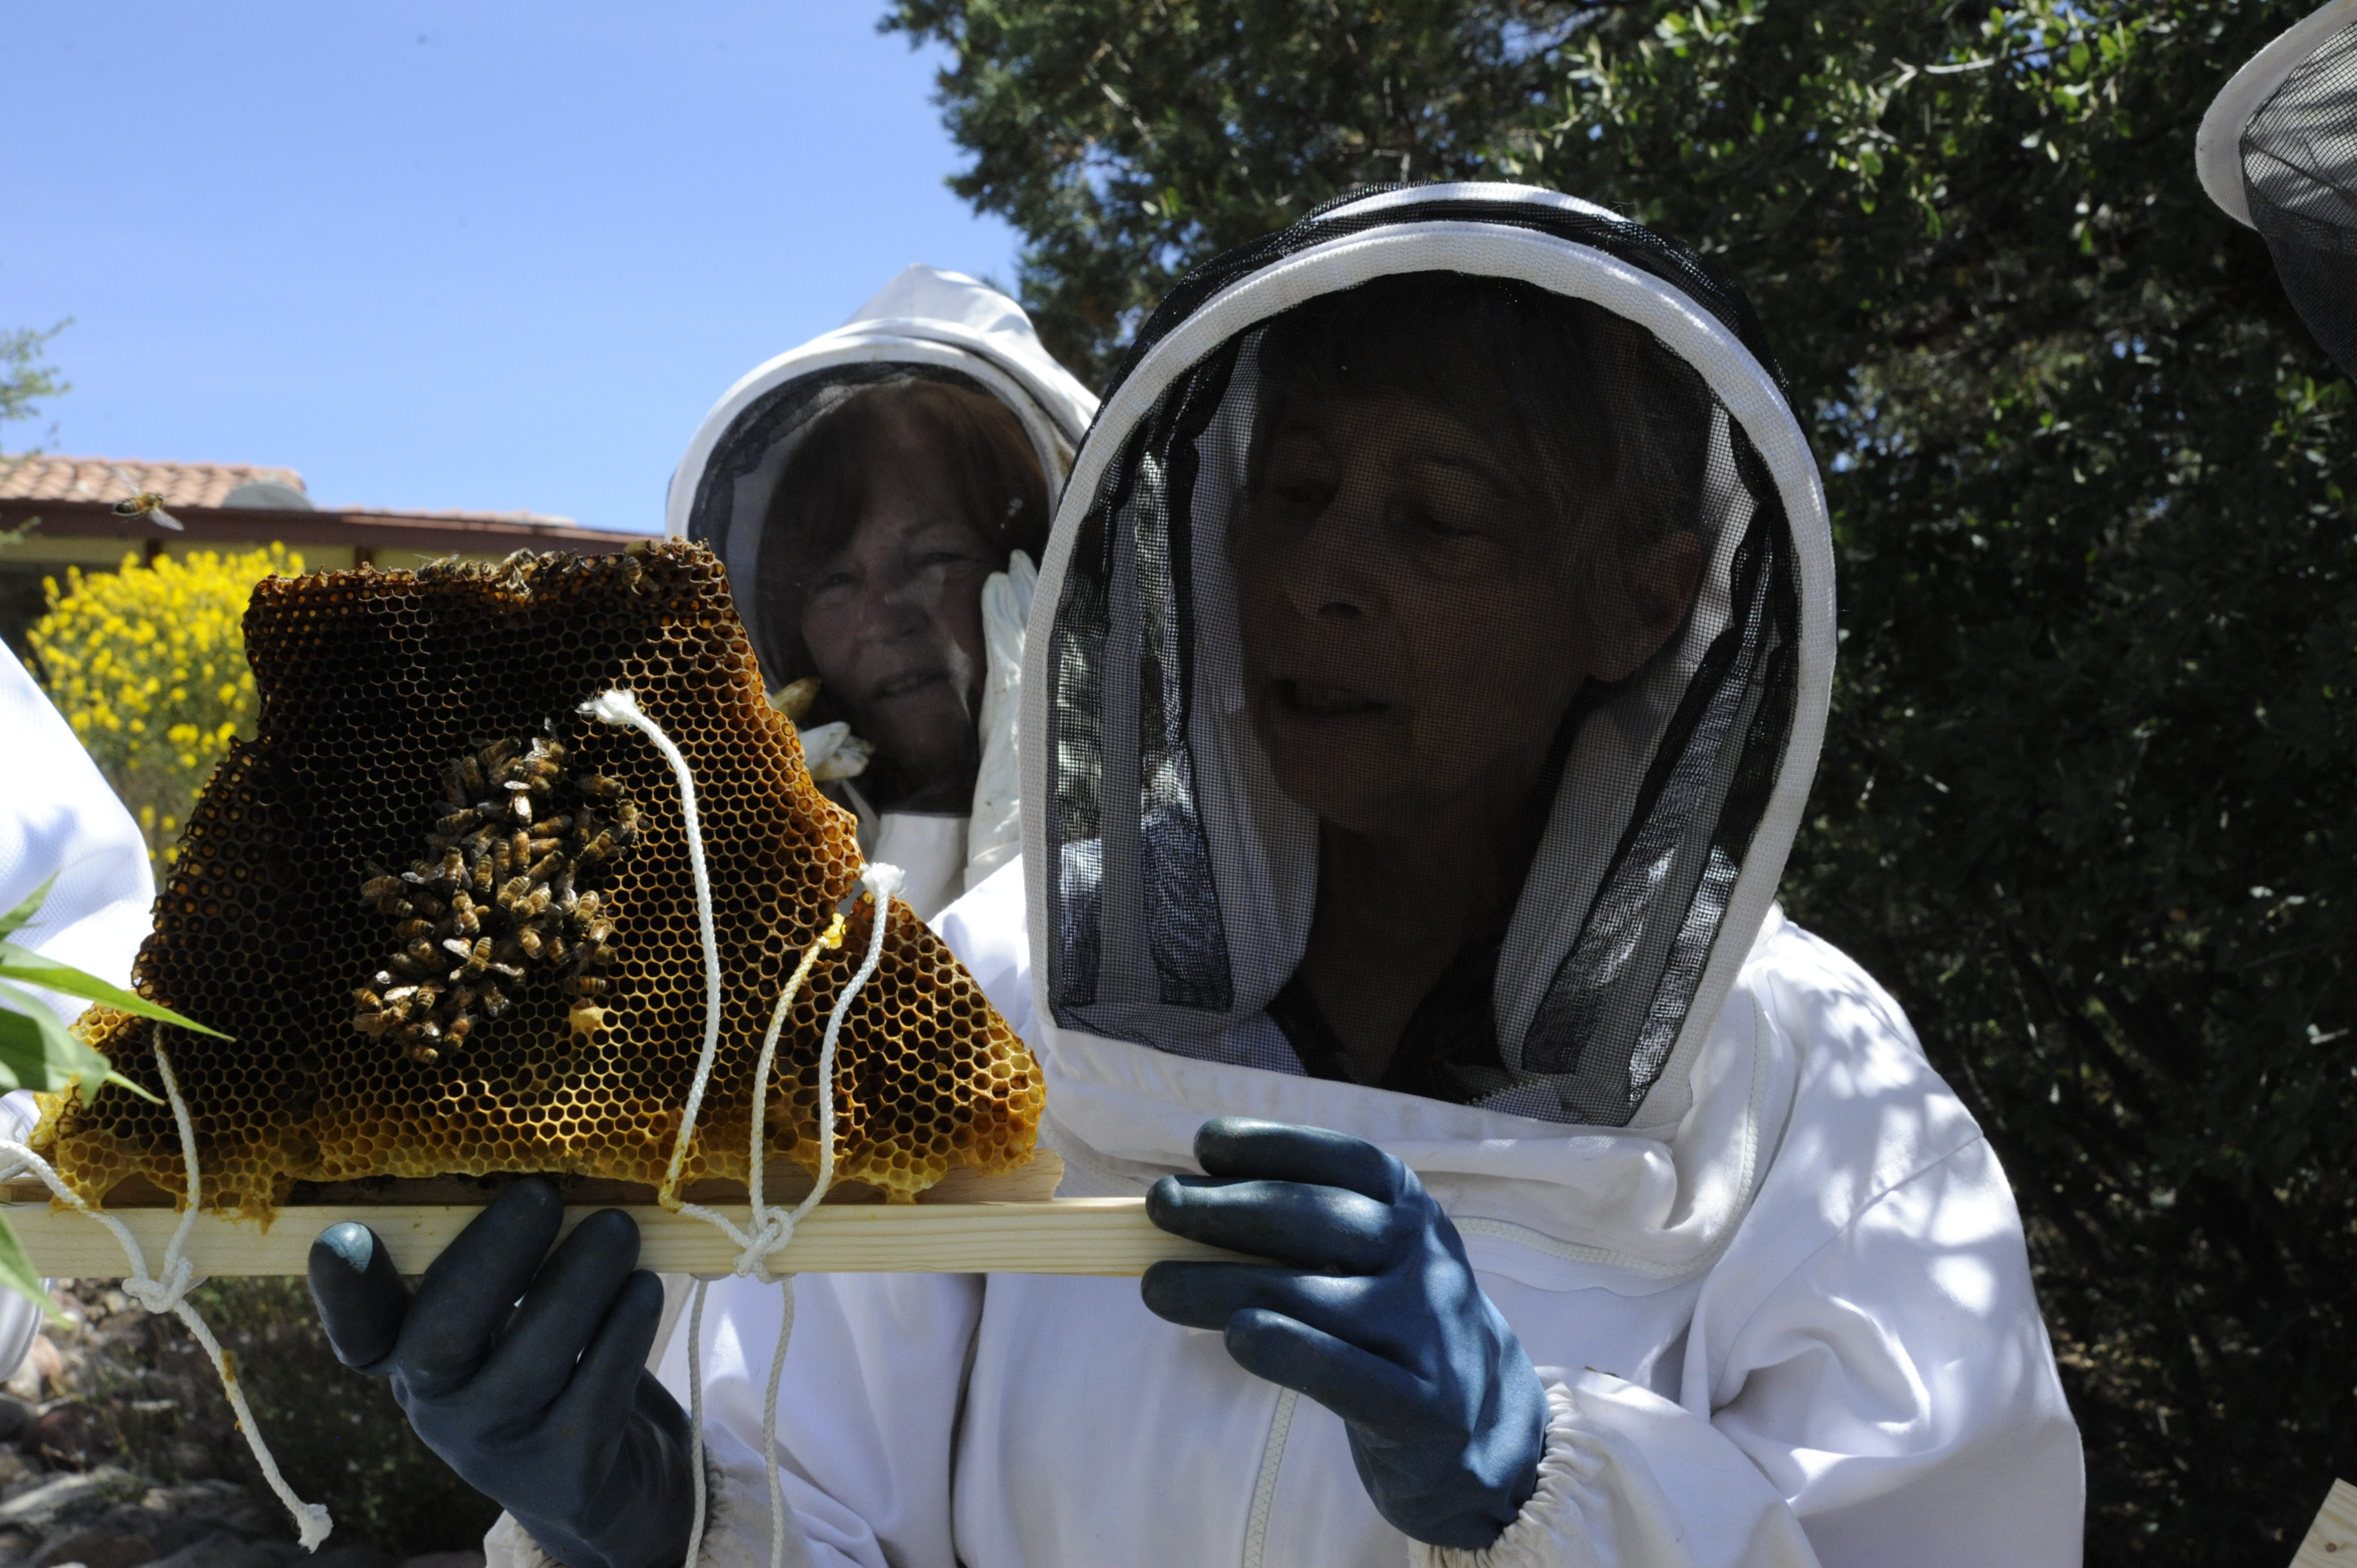 (Press Staff Photo by Geoffrey Plant) Susan Clair, president of the Grant County Beekeepers, inspects a comb from a troubled hive as fellow beekeeper Barbara Maxfeldt looks on. The local beekeeper group has been working on documents to be incorporated into a Silver City 'bee ordinance' that town councilors will vote on at their July 23 meeting.